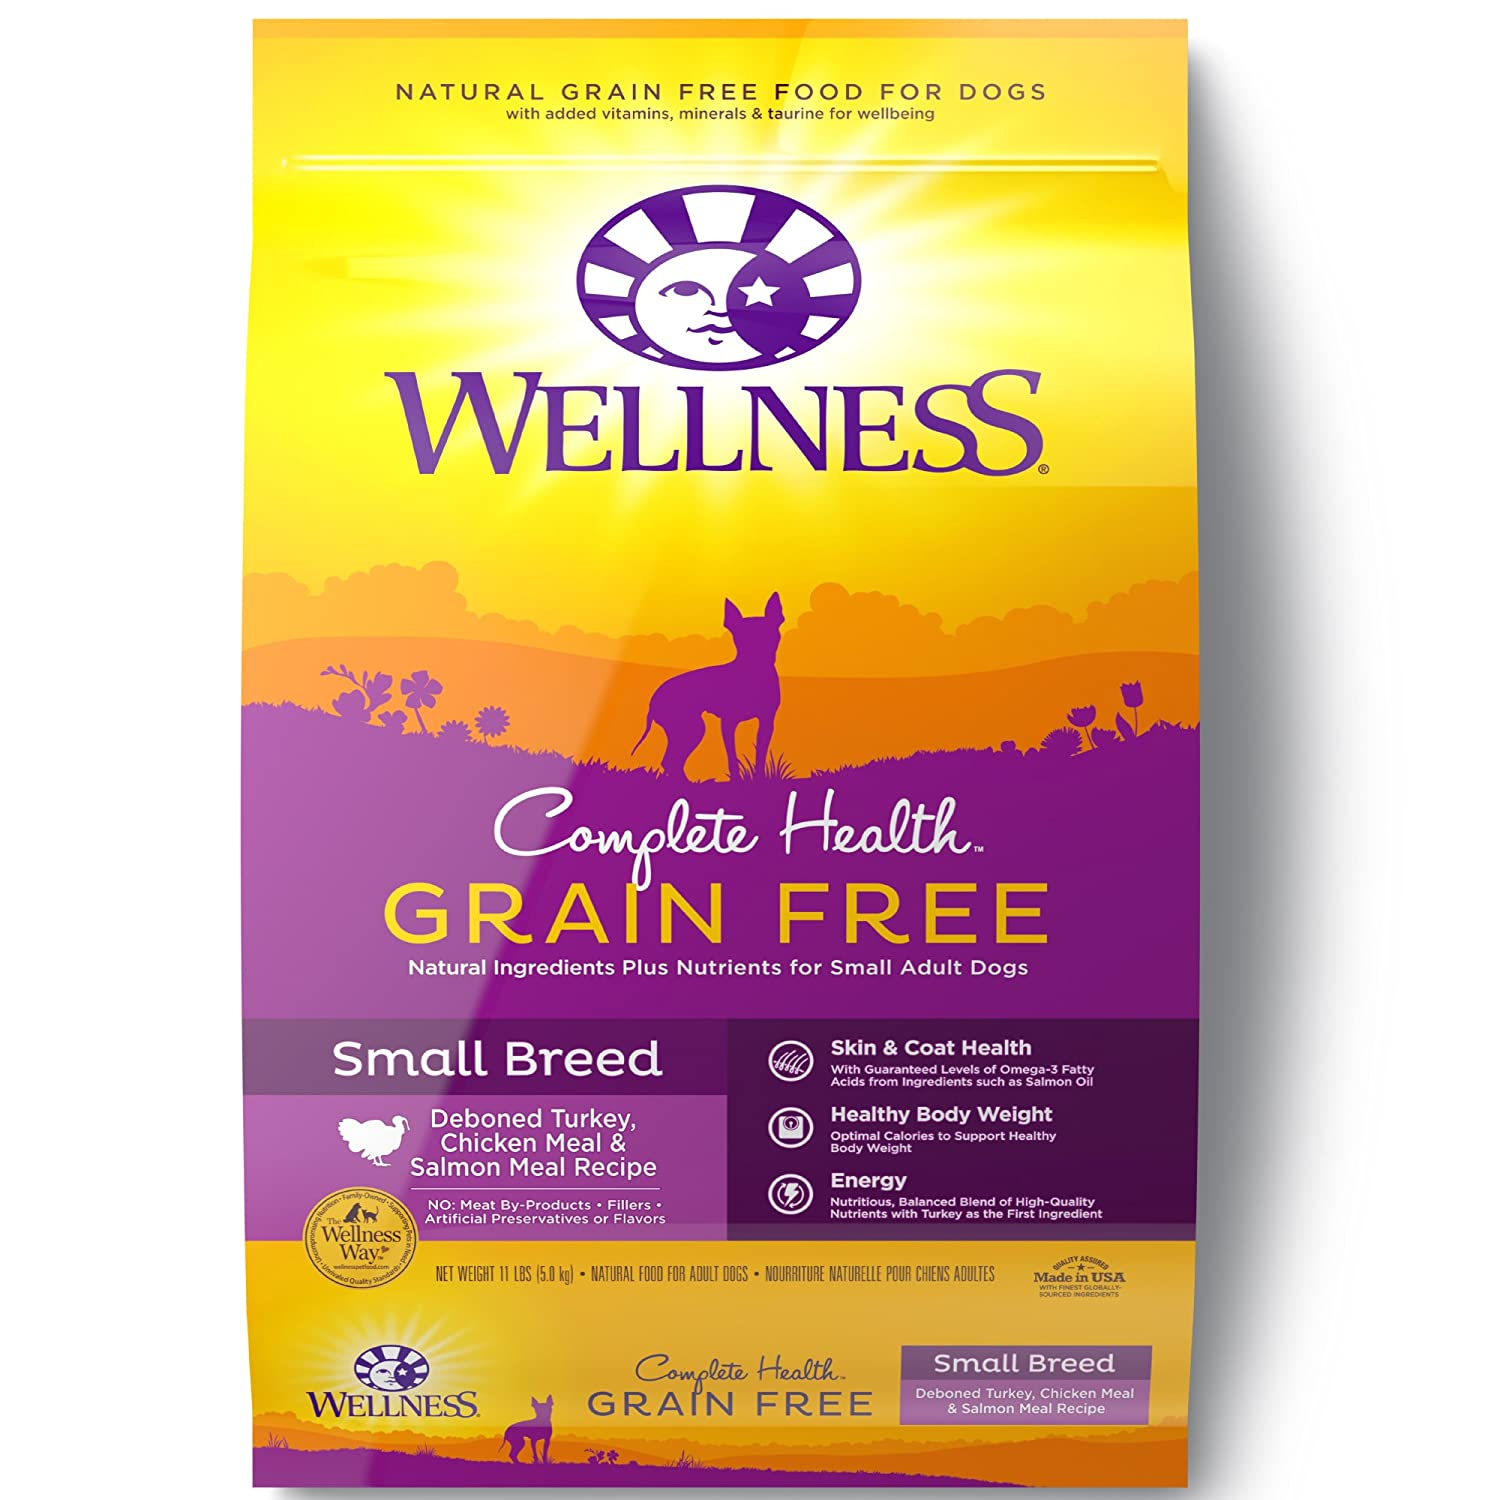 Wellness Complete Health Natural Grain Free Dry Dog Food Small Breed Turkey, Chicken Salmon